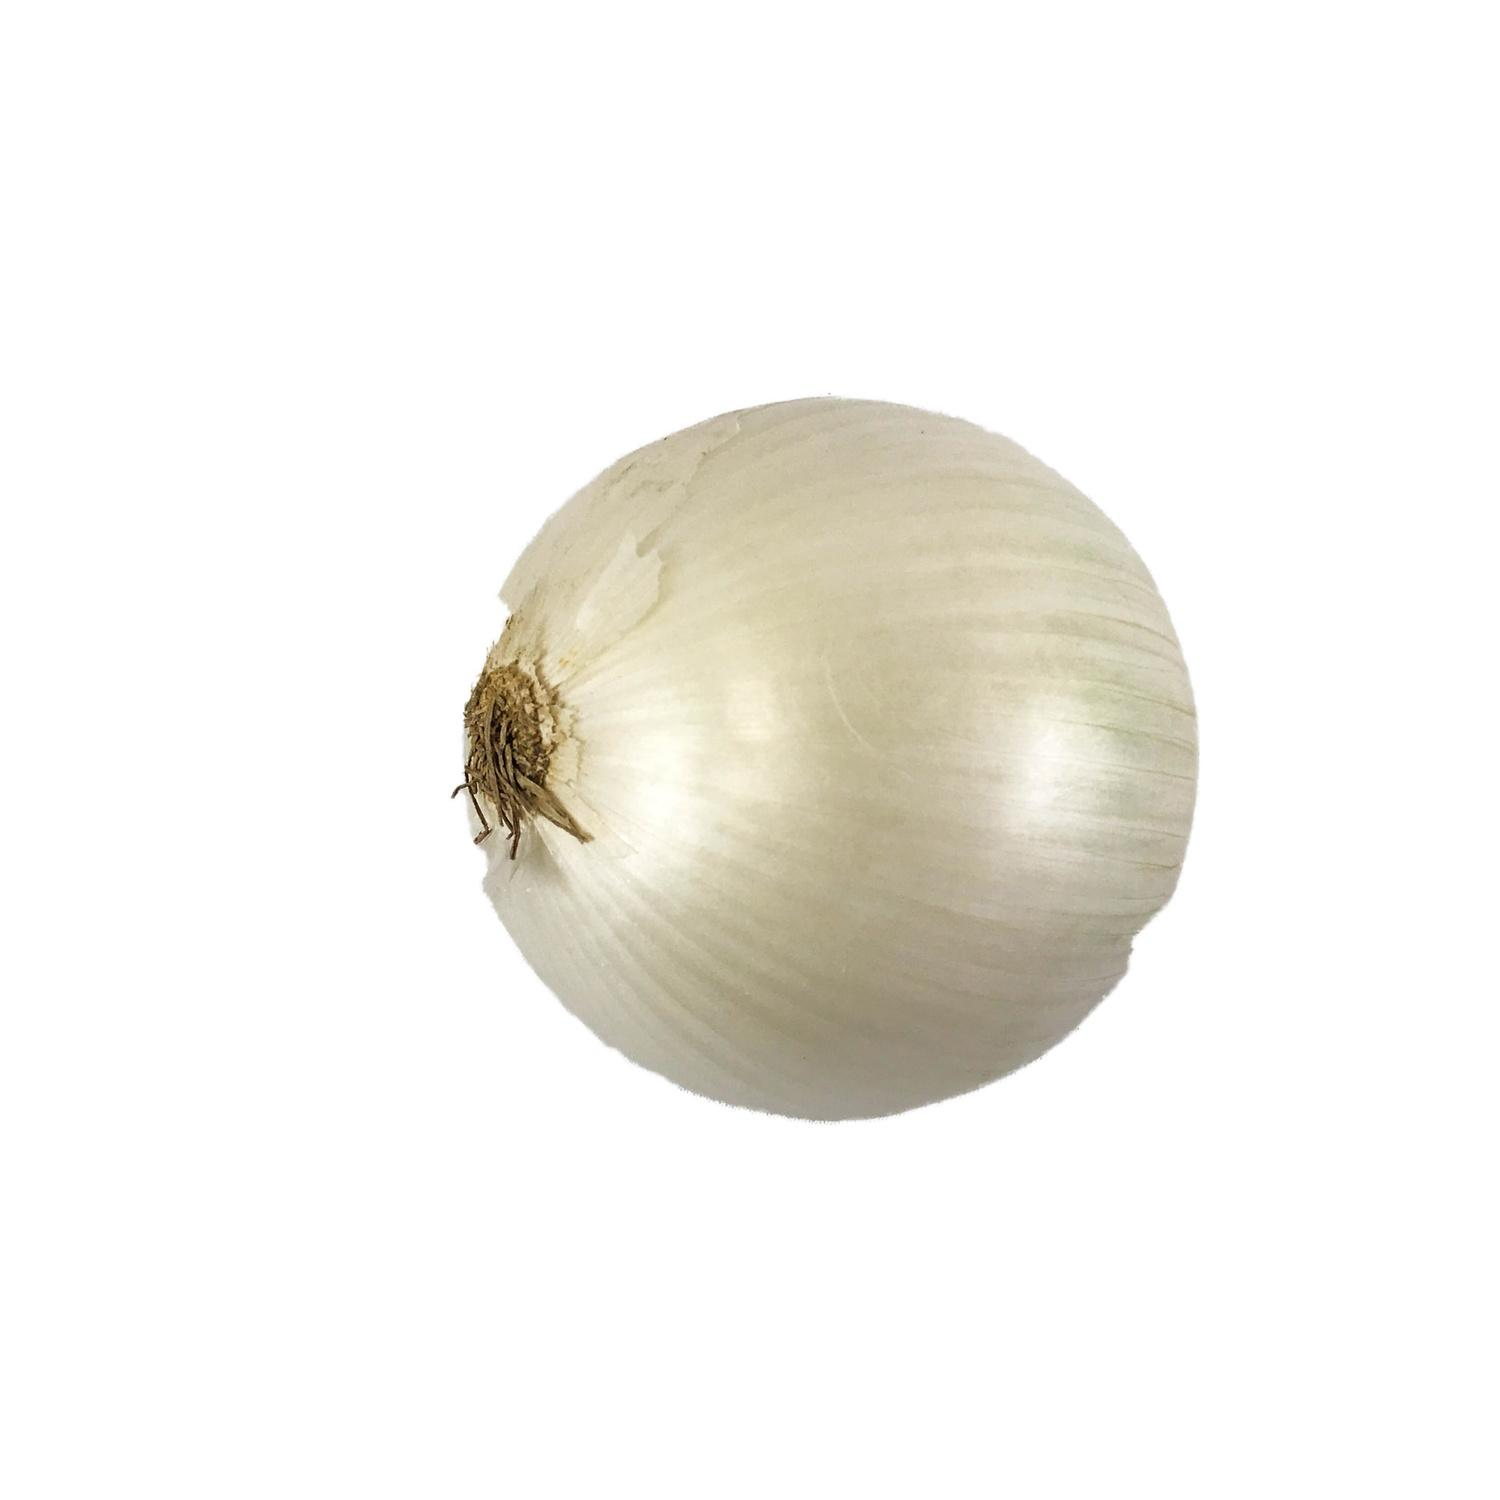 image of ONION WHITE JMBO FRSH CTN